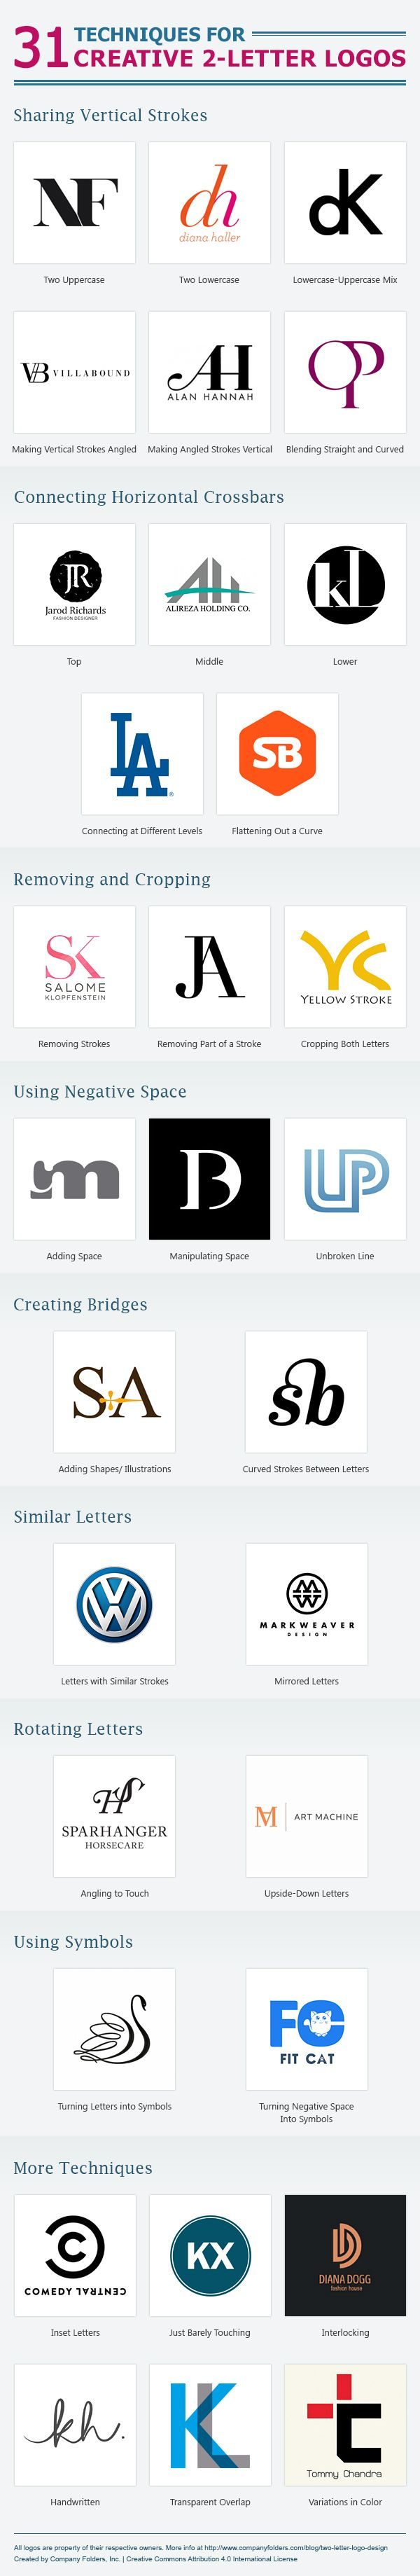 got a 2 letter business name 31 ways to make your logo more creative - Graphic Design Business Name Ideas